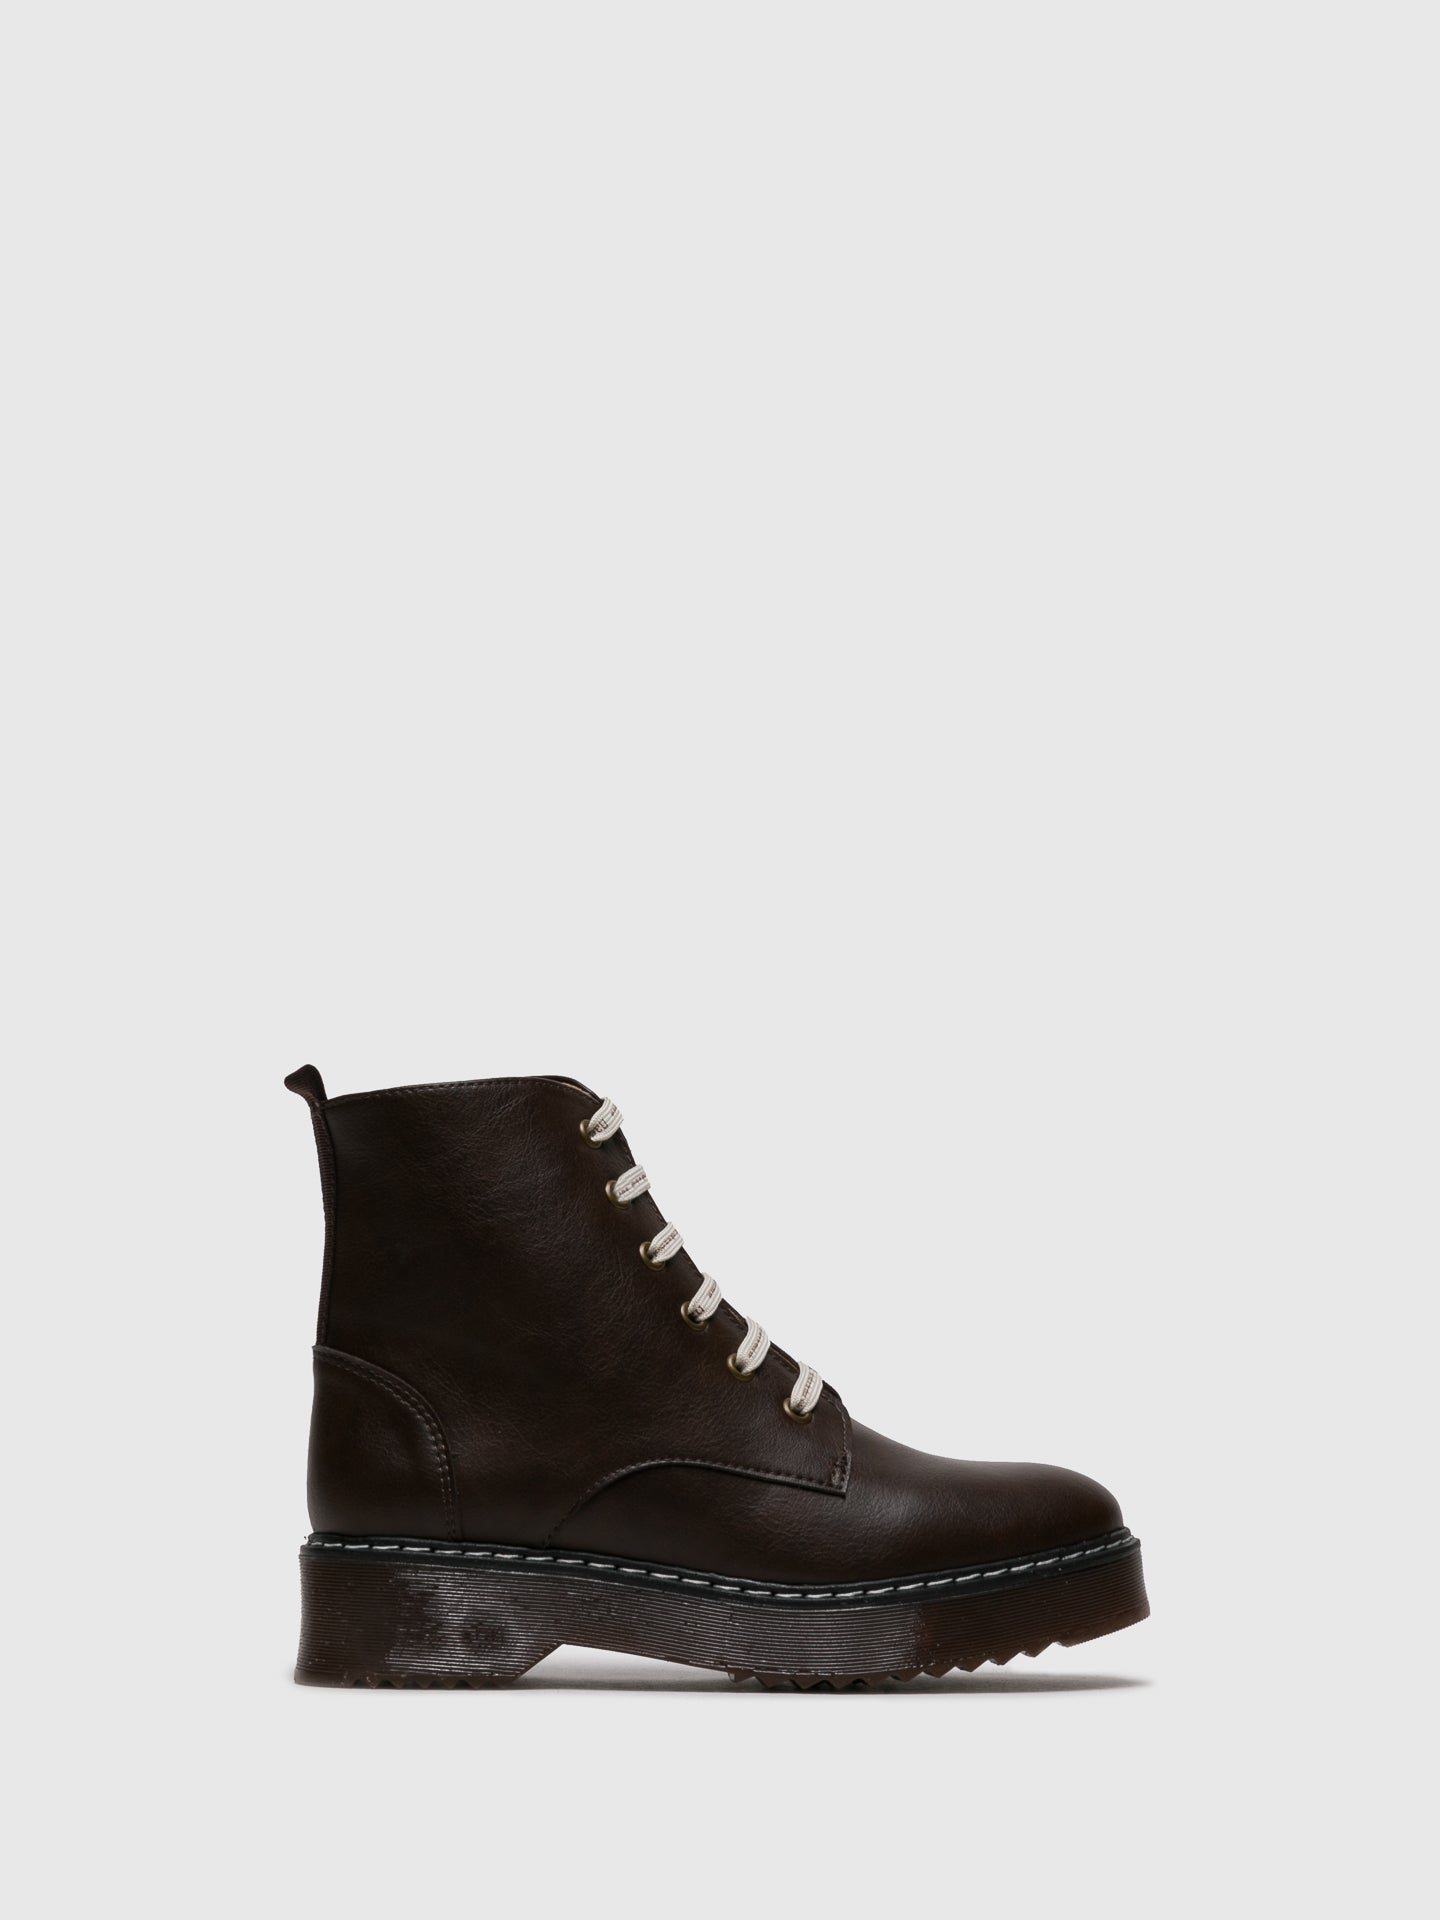 NAE Vegan Shoes Brown Lace-up Ankle Boots